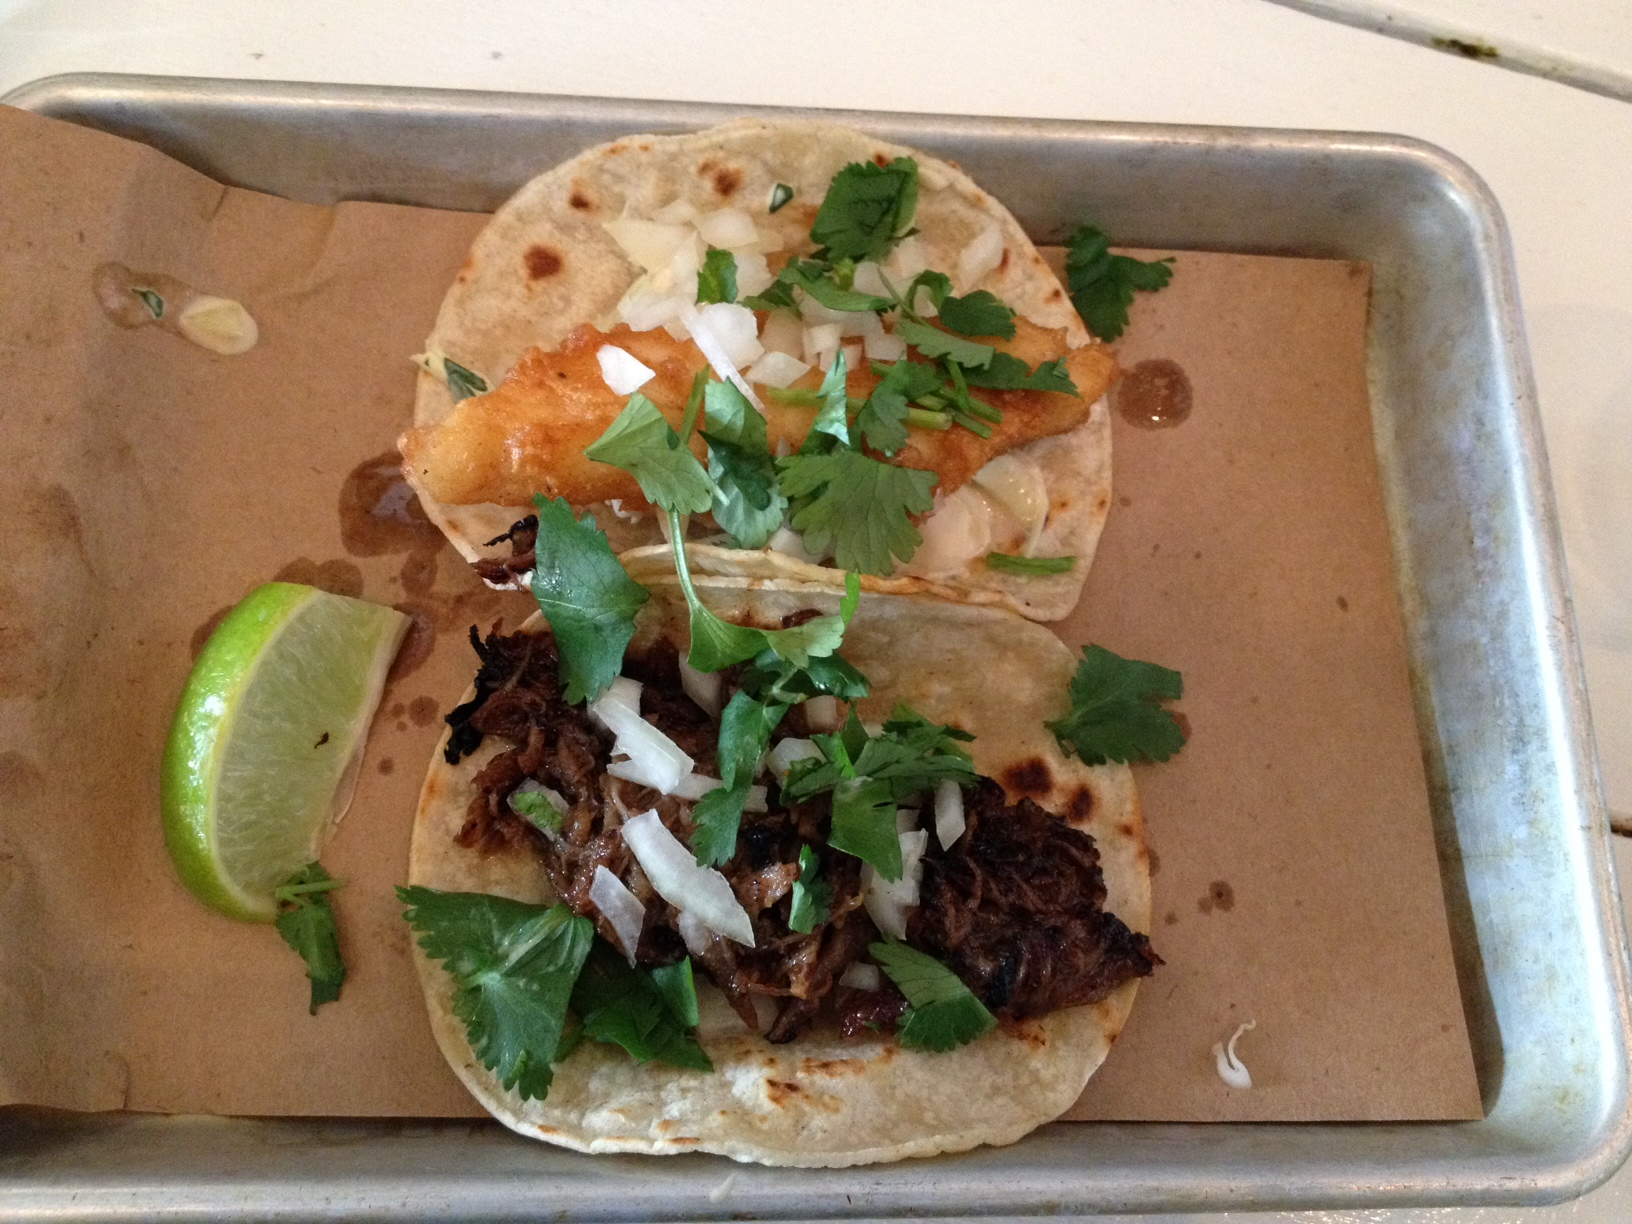 Food Blog: Bartaco in Port Chester